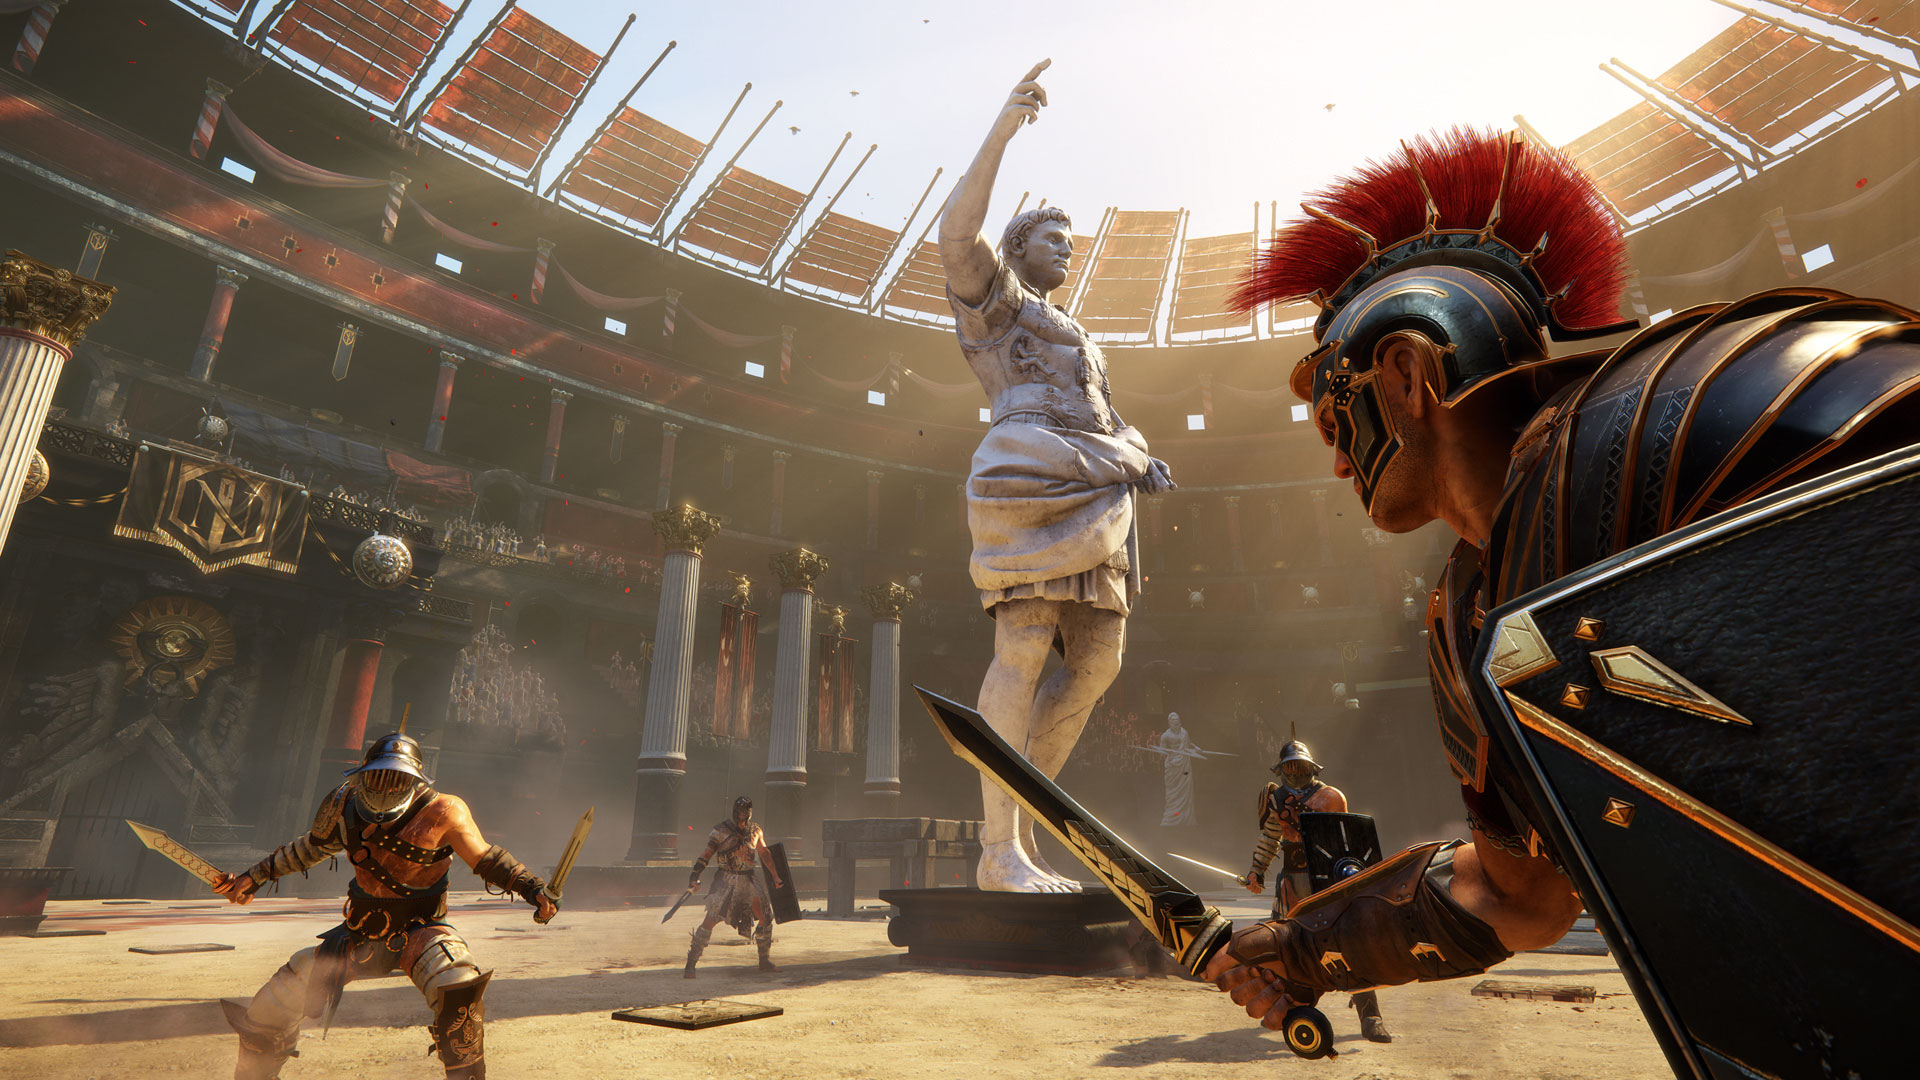 How videogame graphics and movie VFX are converging | Creative Bloq